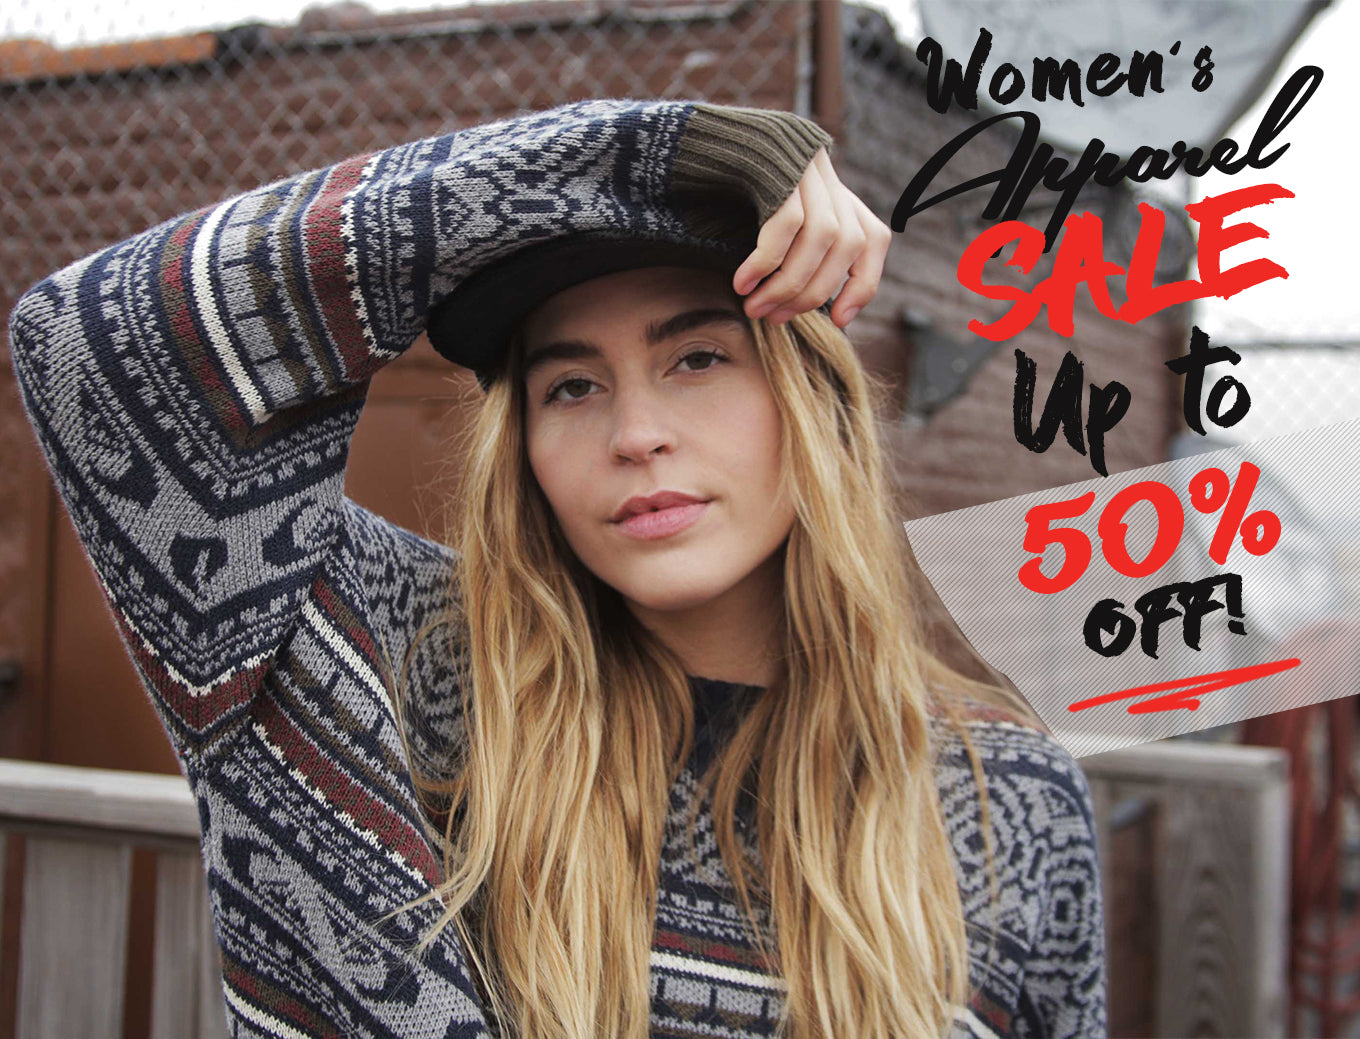 Origin Boardshop Women's Apparel